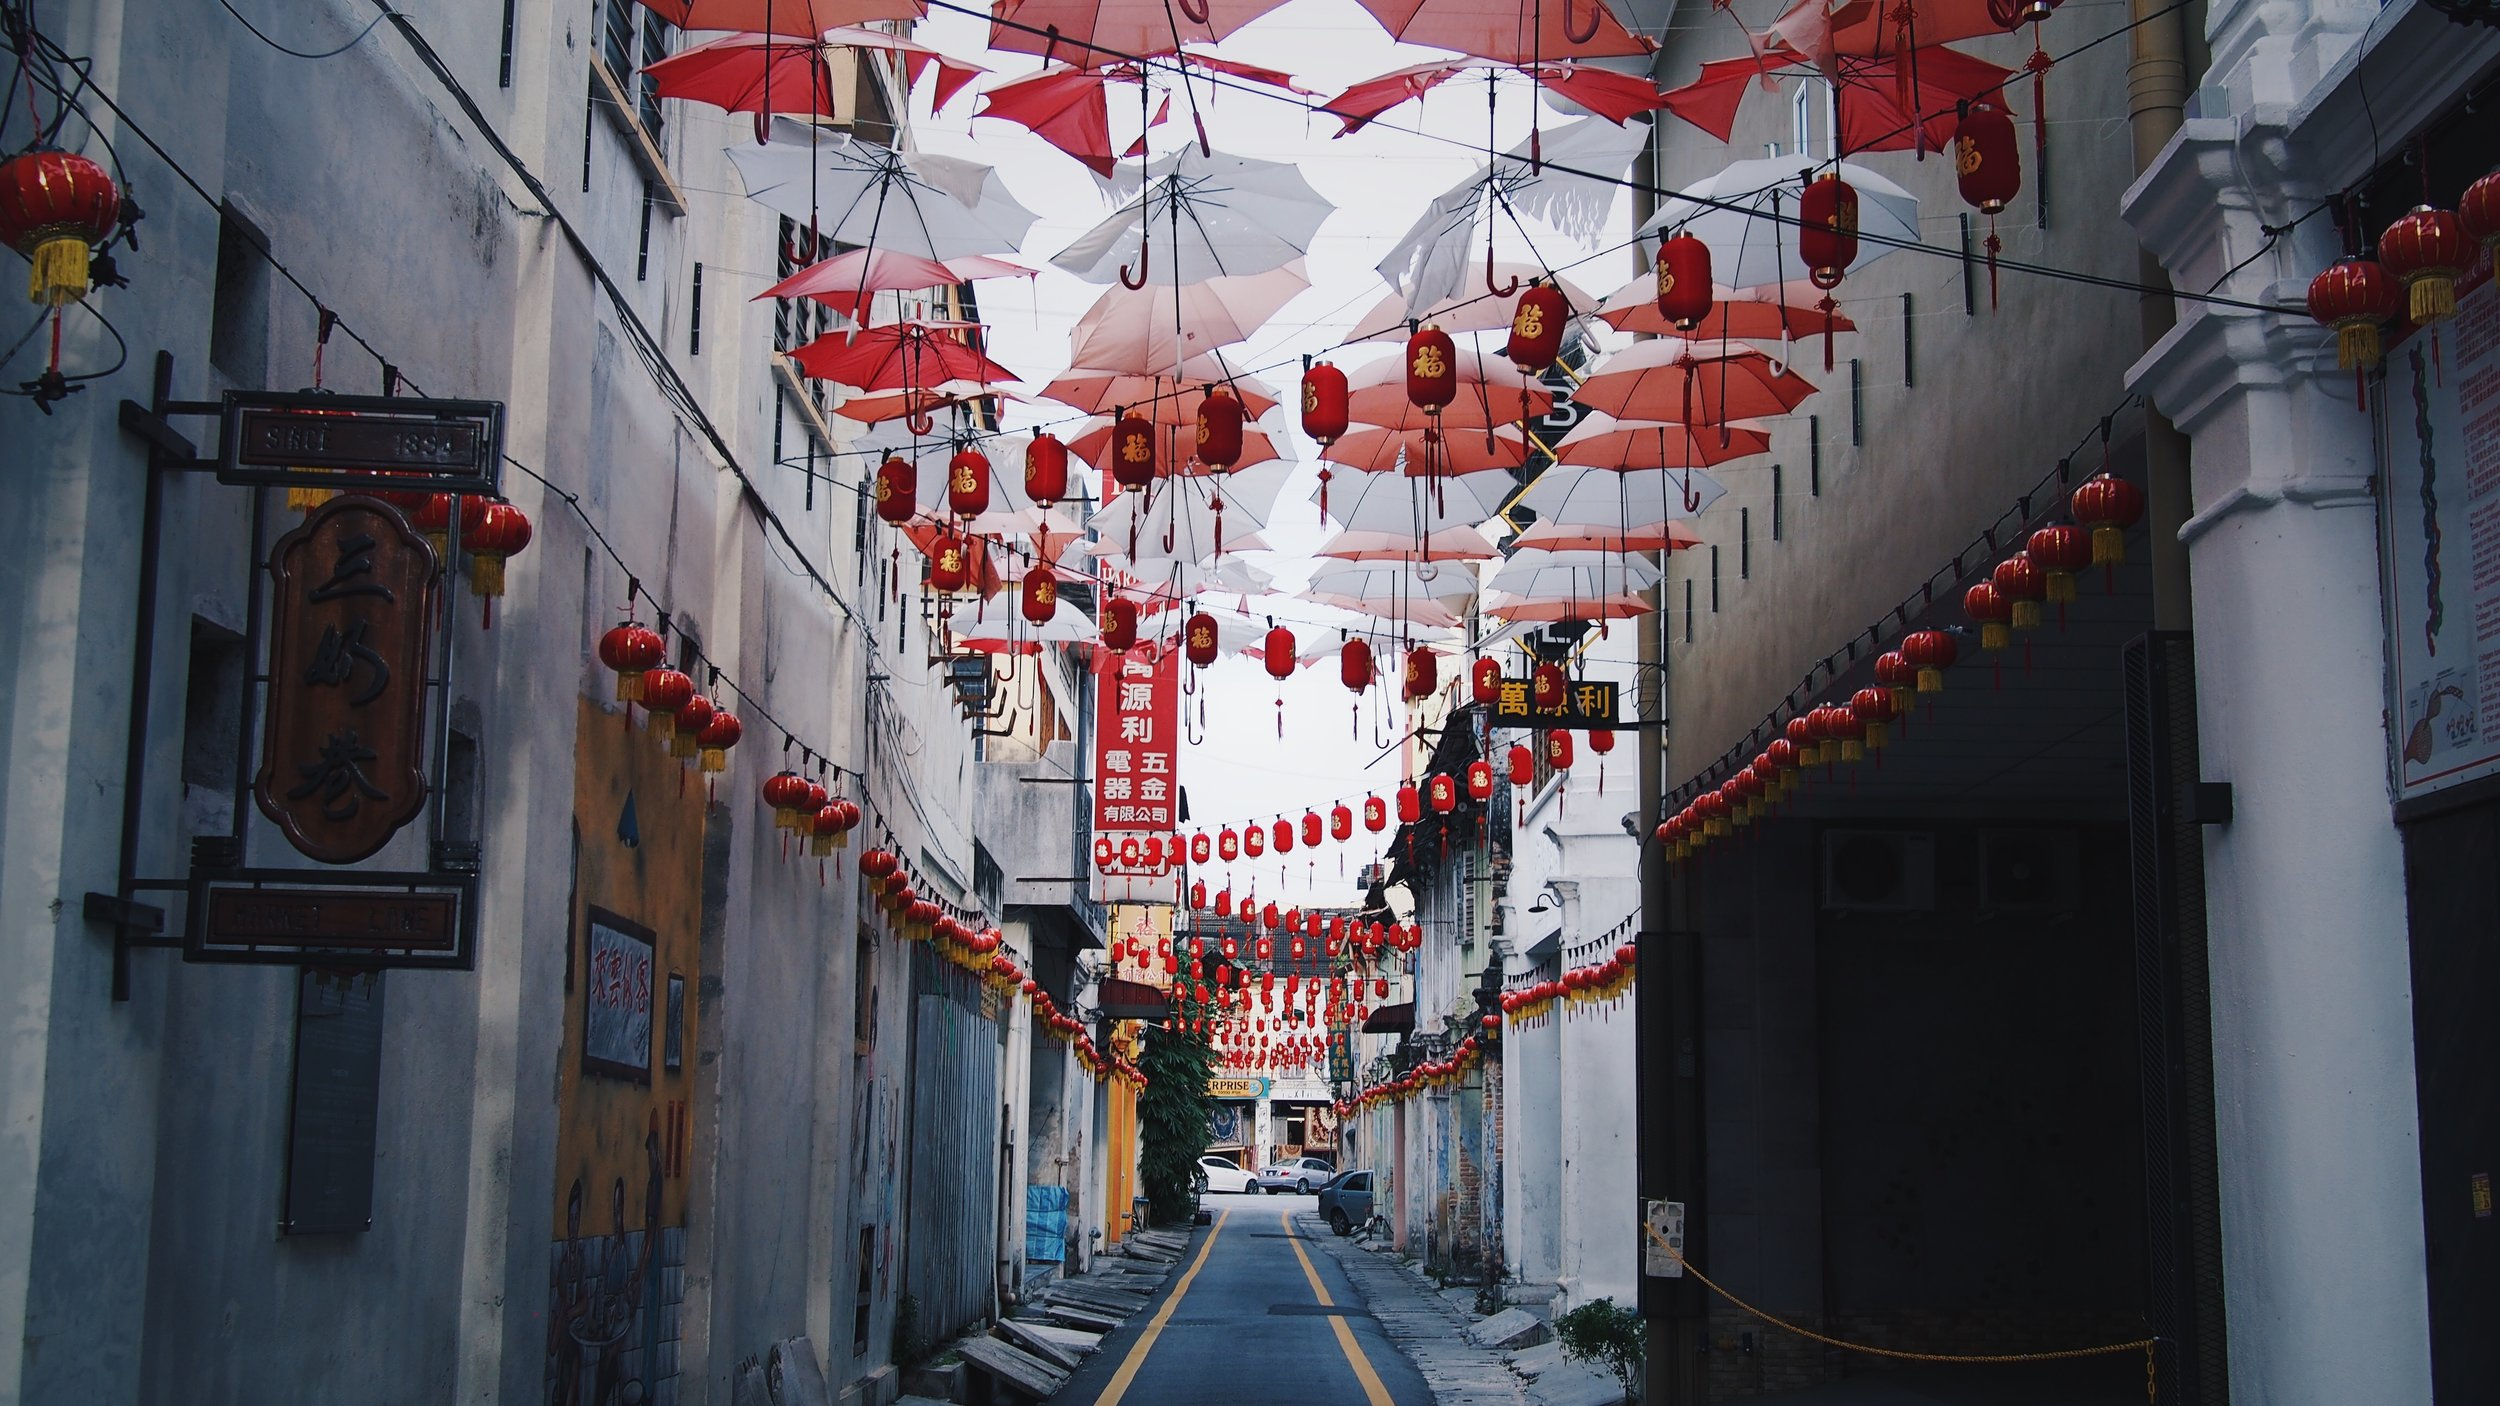 Red and white umbrellas hanging above a street in Ipoh, Malaysia